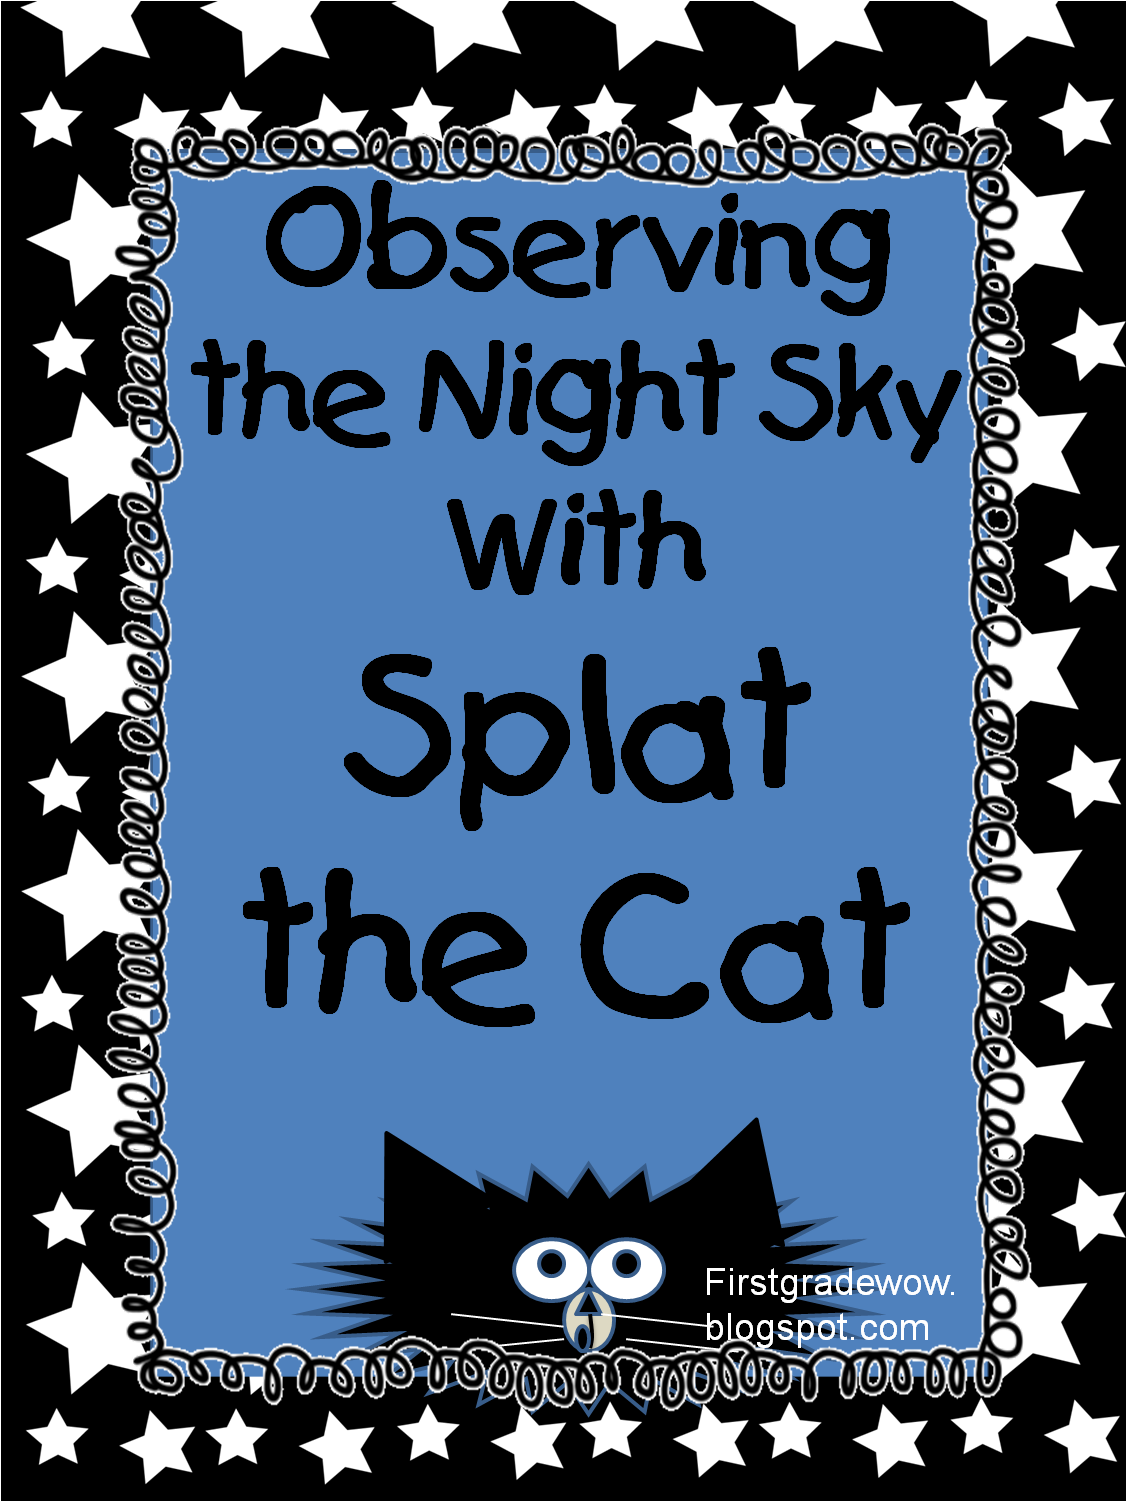 First Grade Wow Splat The Cat Helps Us Observe The Night Sky